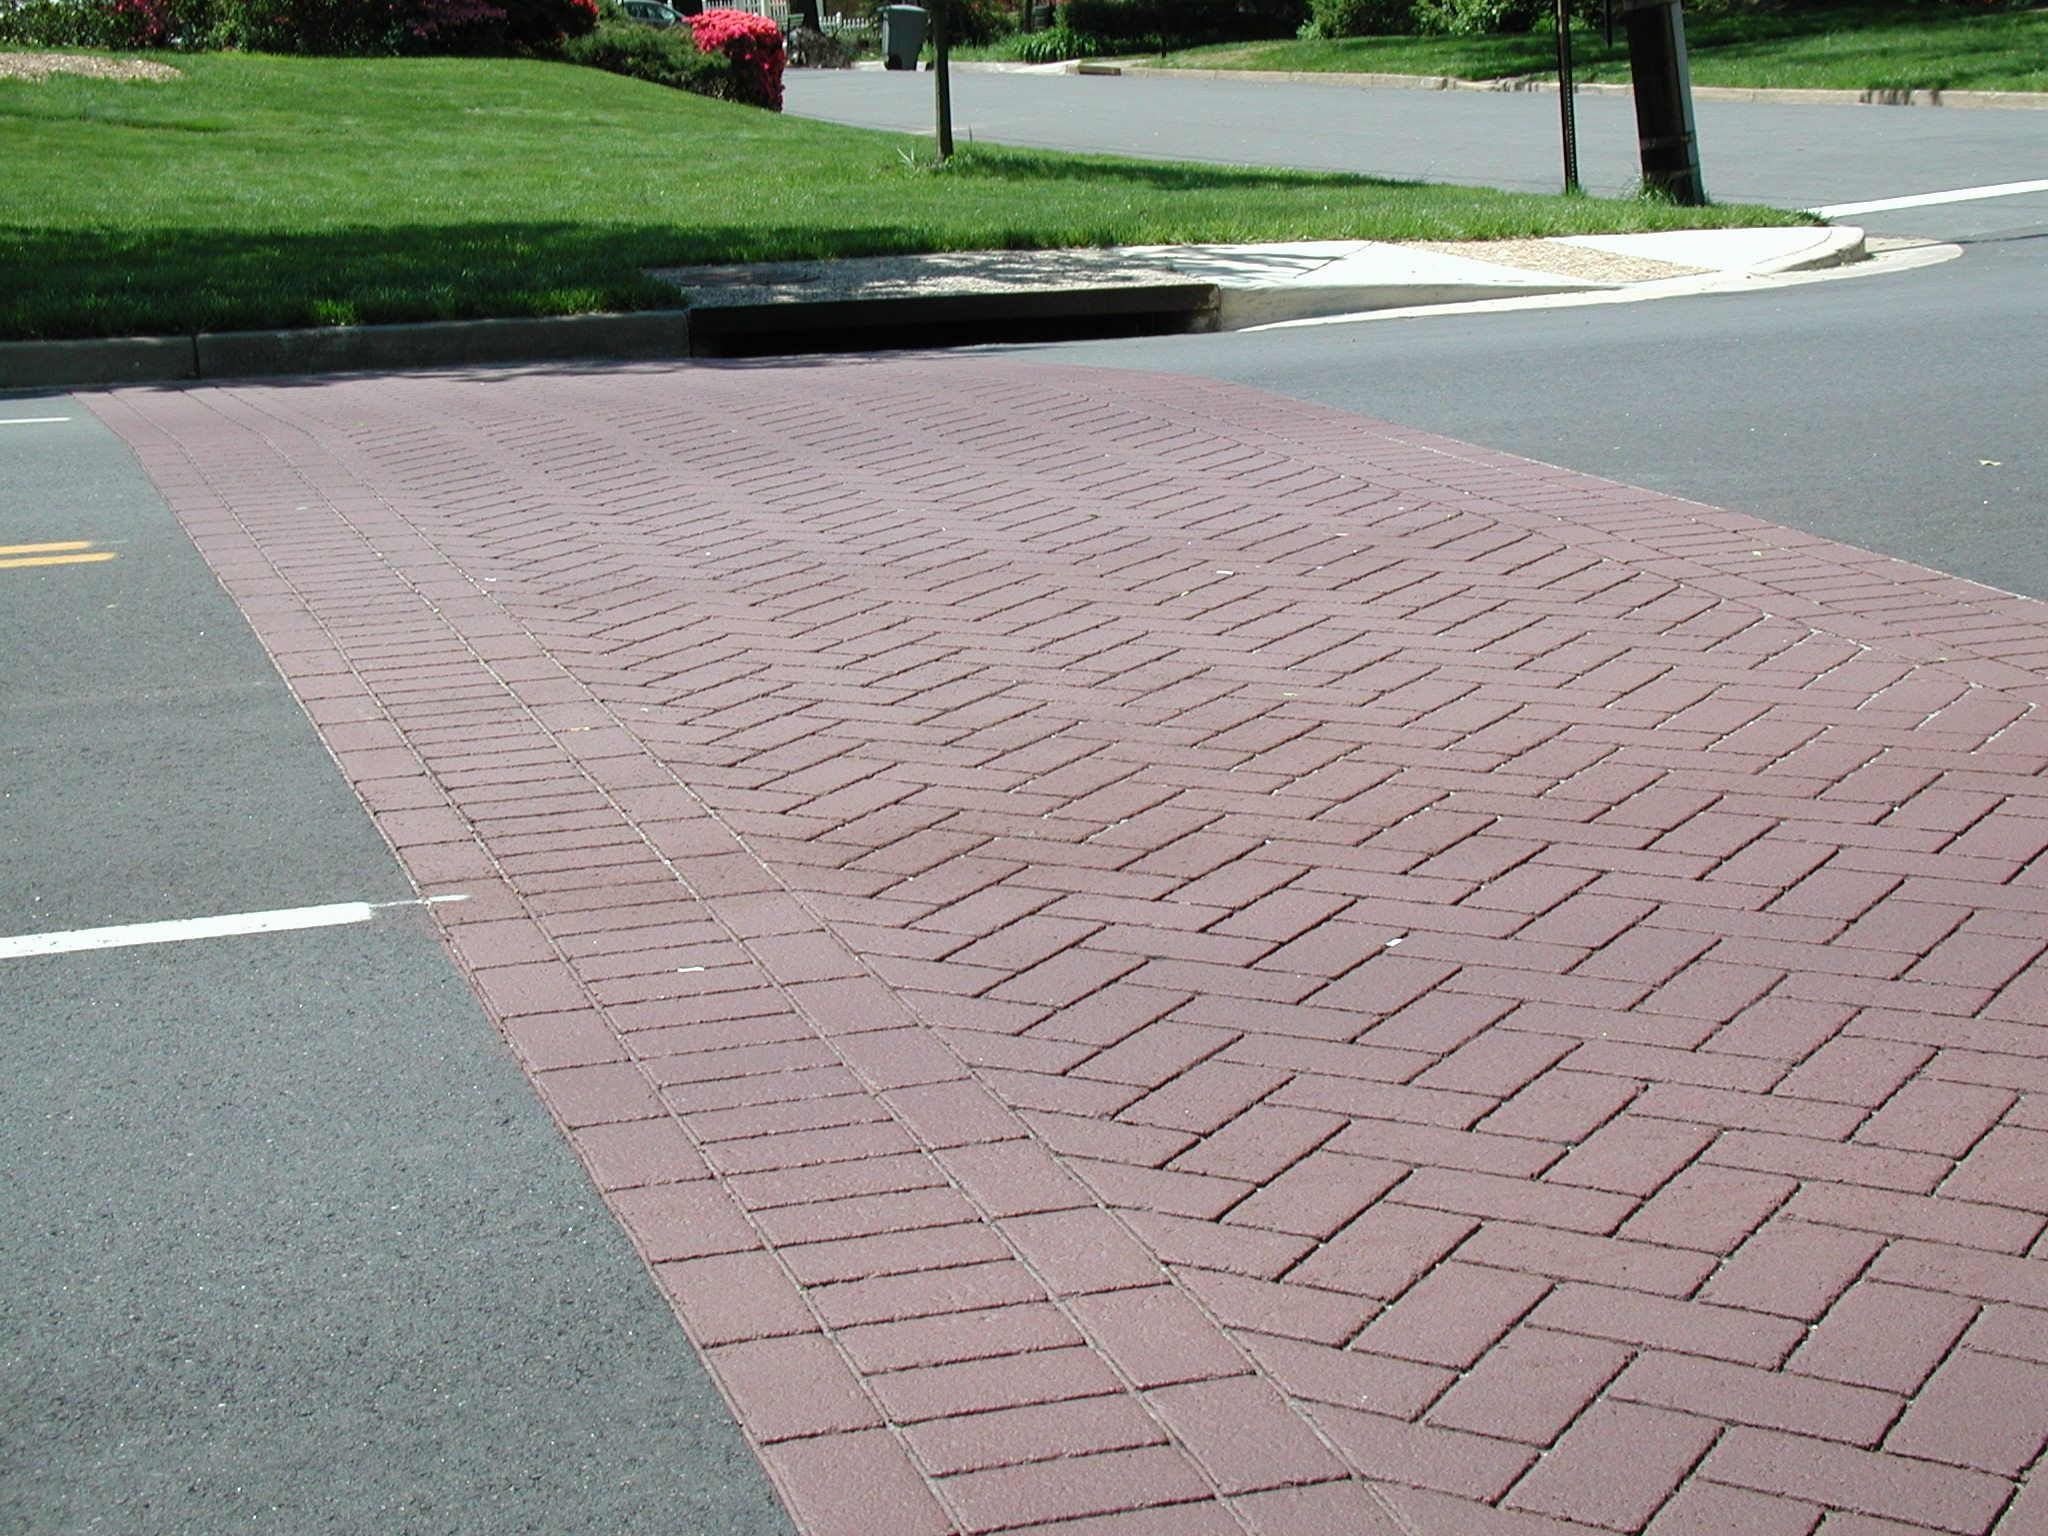 Alternative Paving Concepts StreetPrint crosswalks. Decorative stamped  asphalt, practical, beautiful, and safe